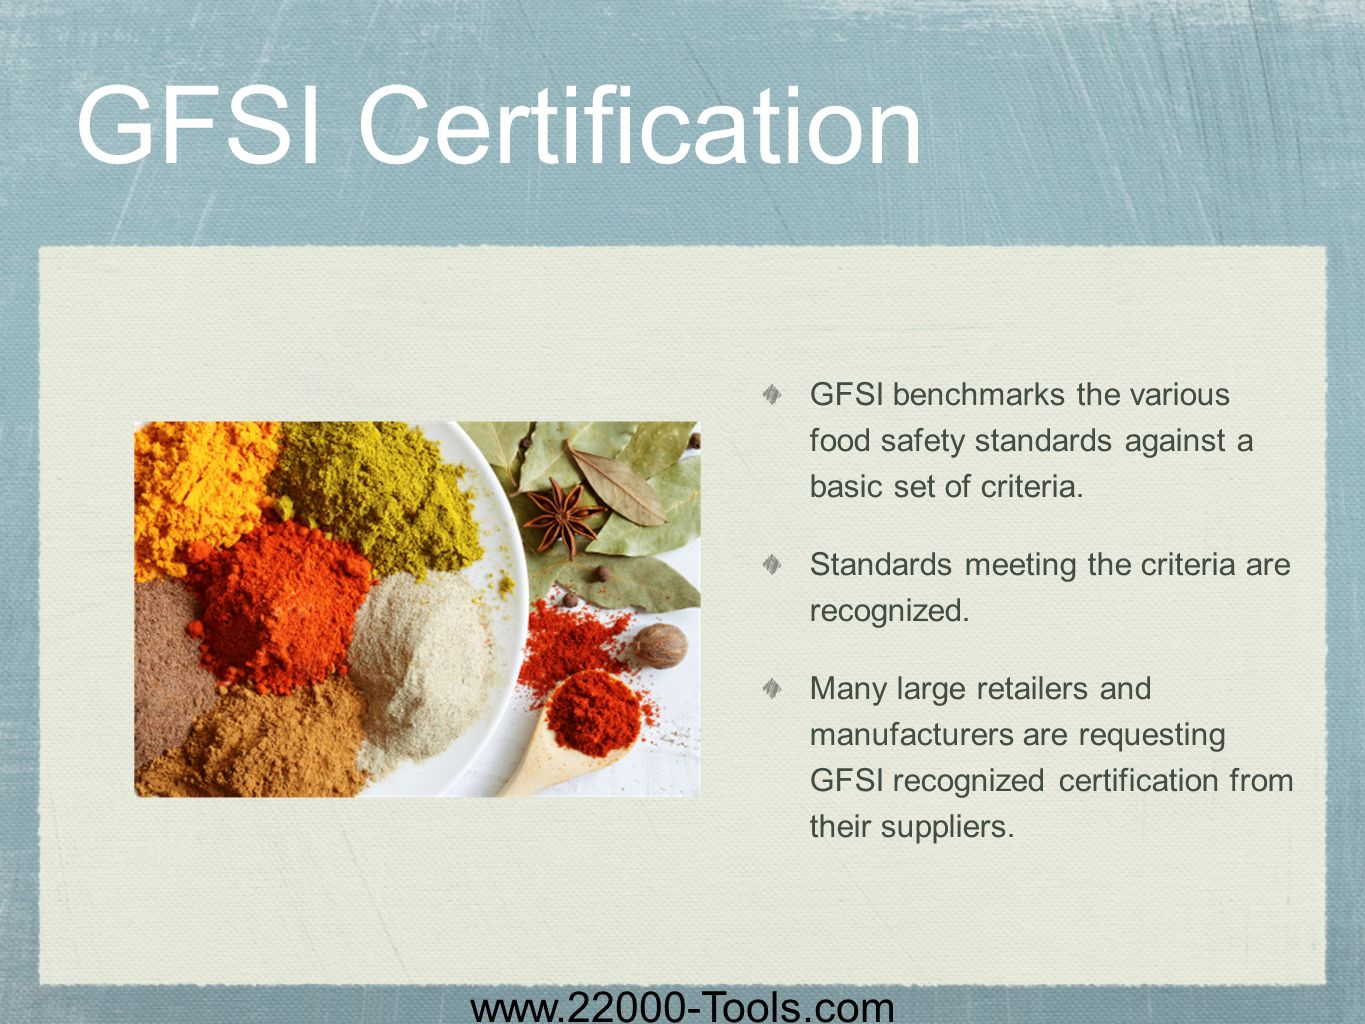 GFSI Certification GFSI benchmarks the various food safety standards against a basic set of criteria.